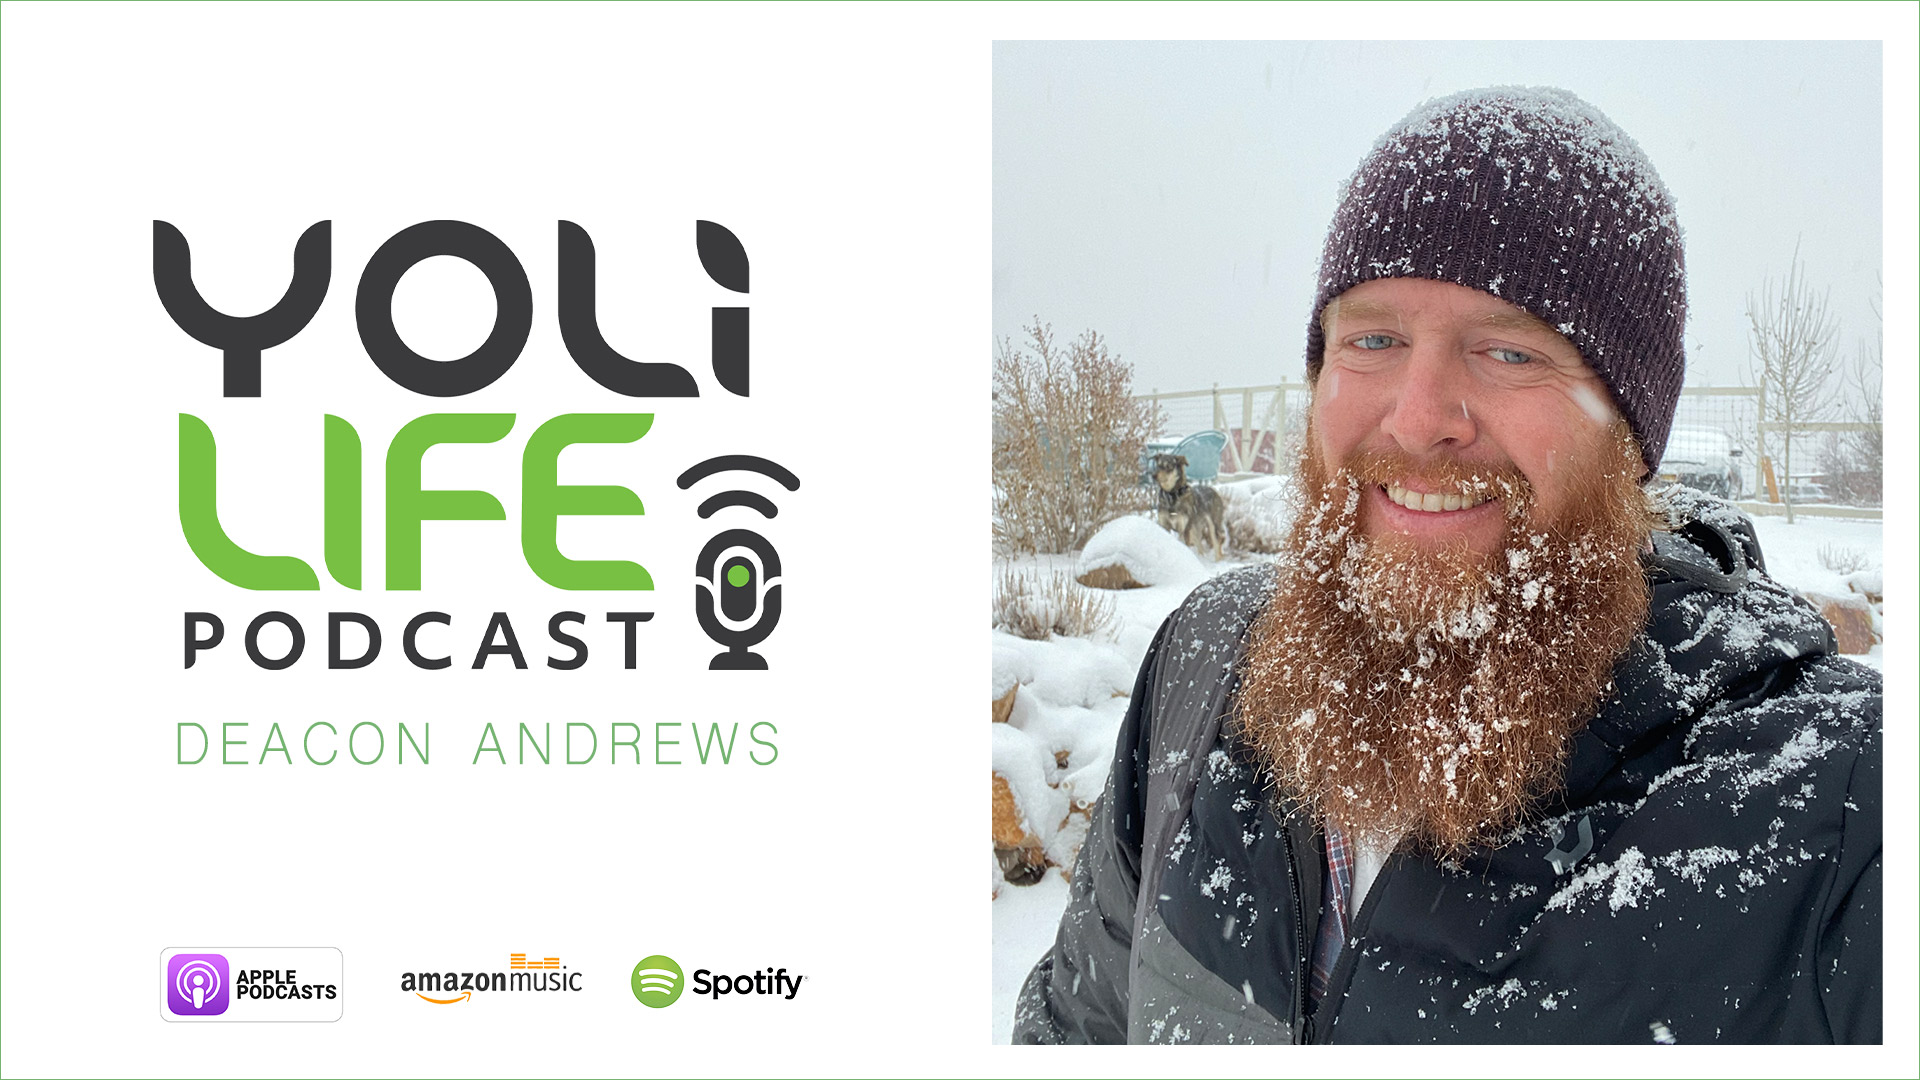 Deacon Andrews on the Yoli Life Podcast